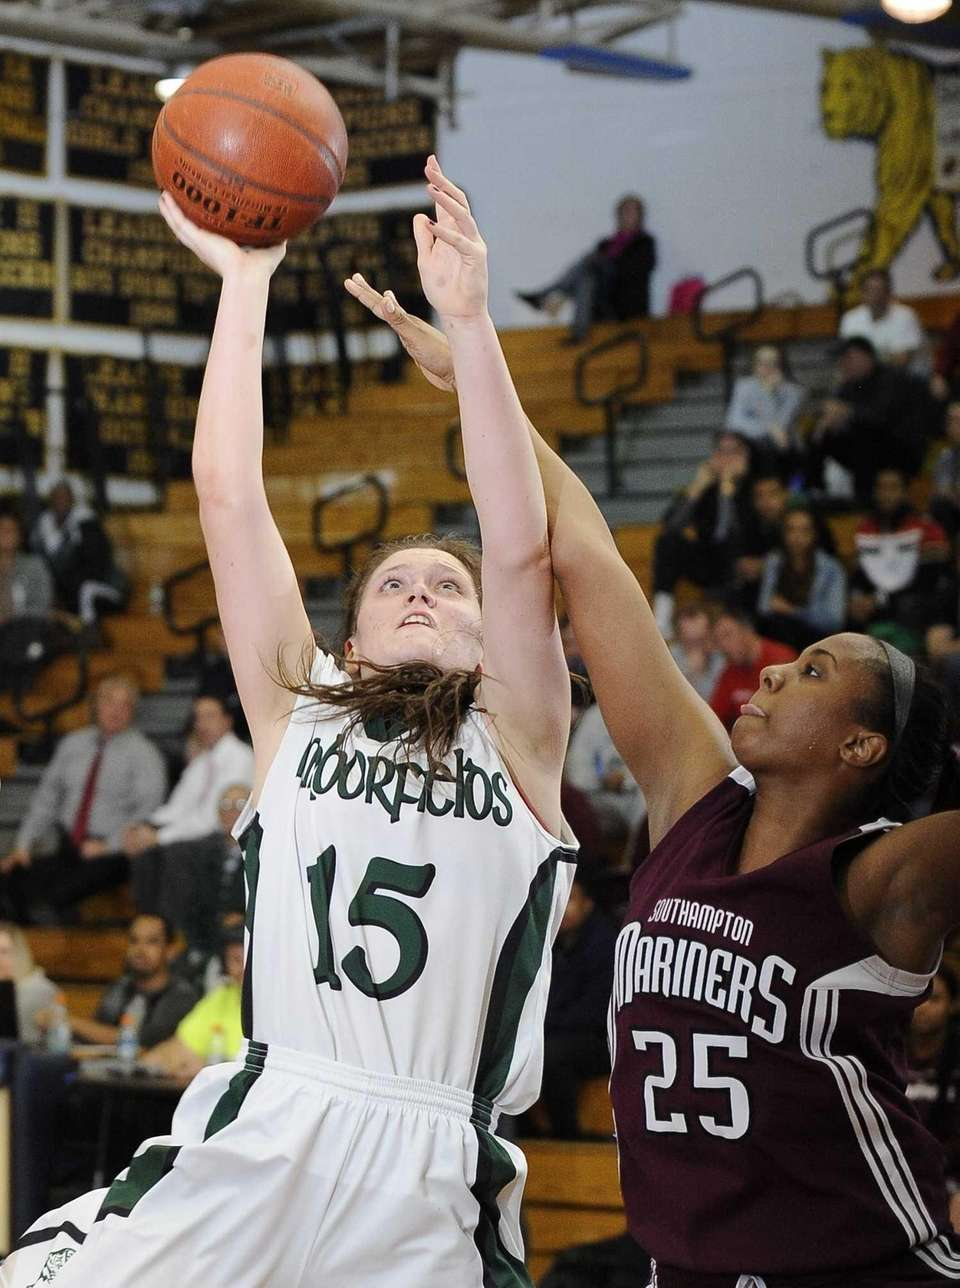 Harborfields' Kristen Kelly shoots as Southampton's Kesi Goree